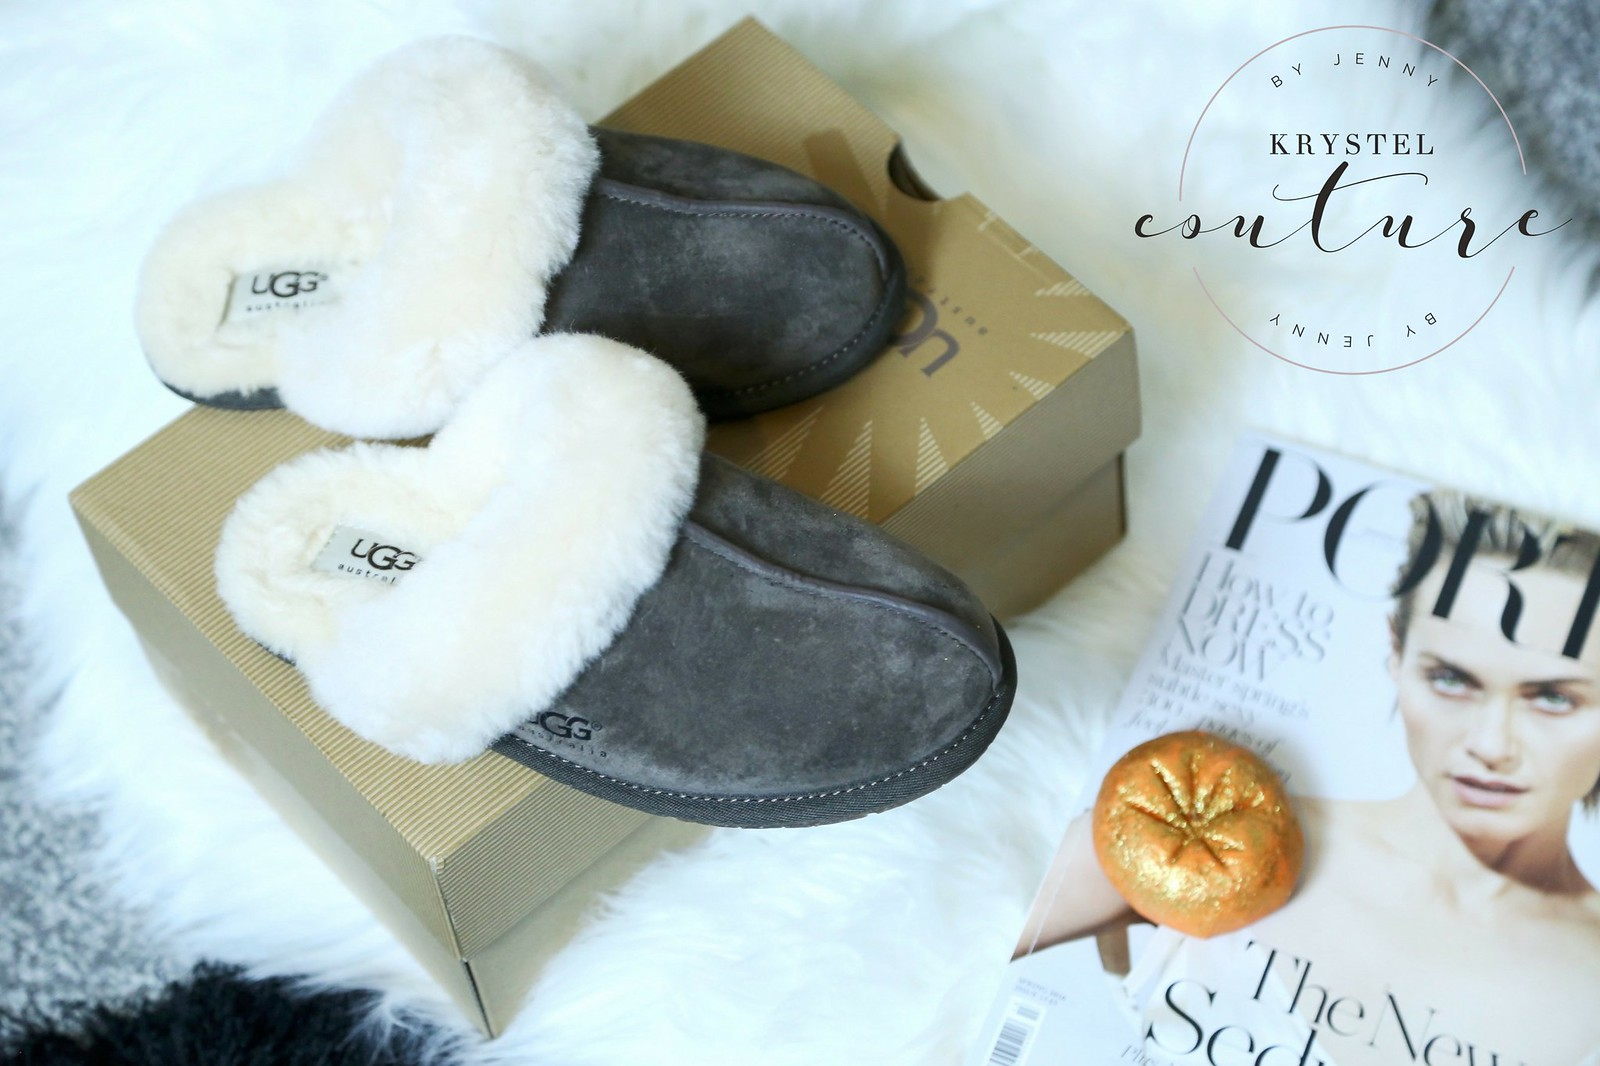 uggaustraliascuffetteslippers, uggslippers, uggscuffetteslippers, woolslippers,